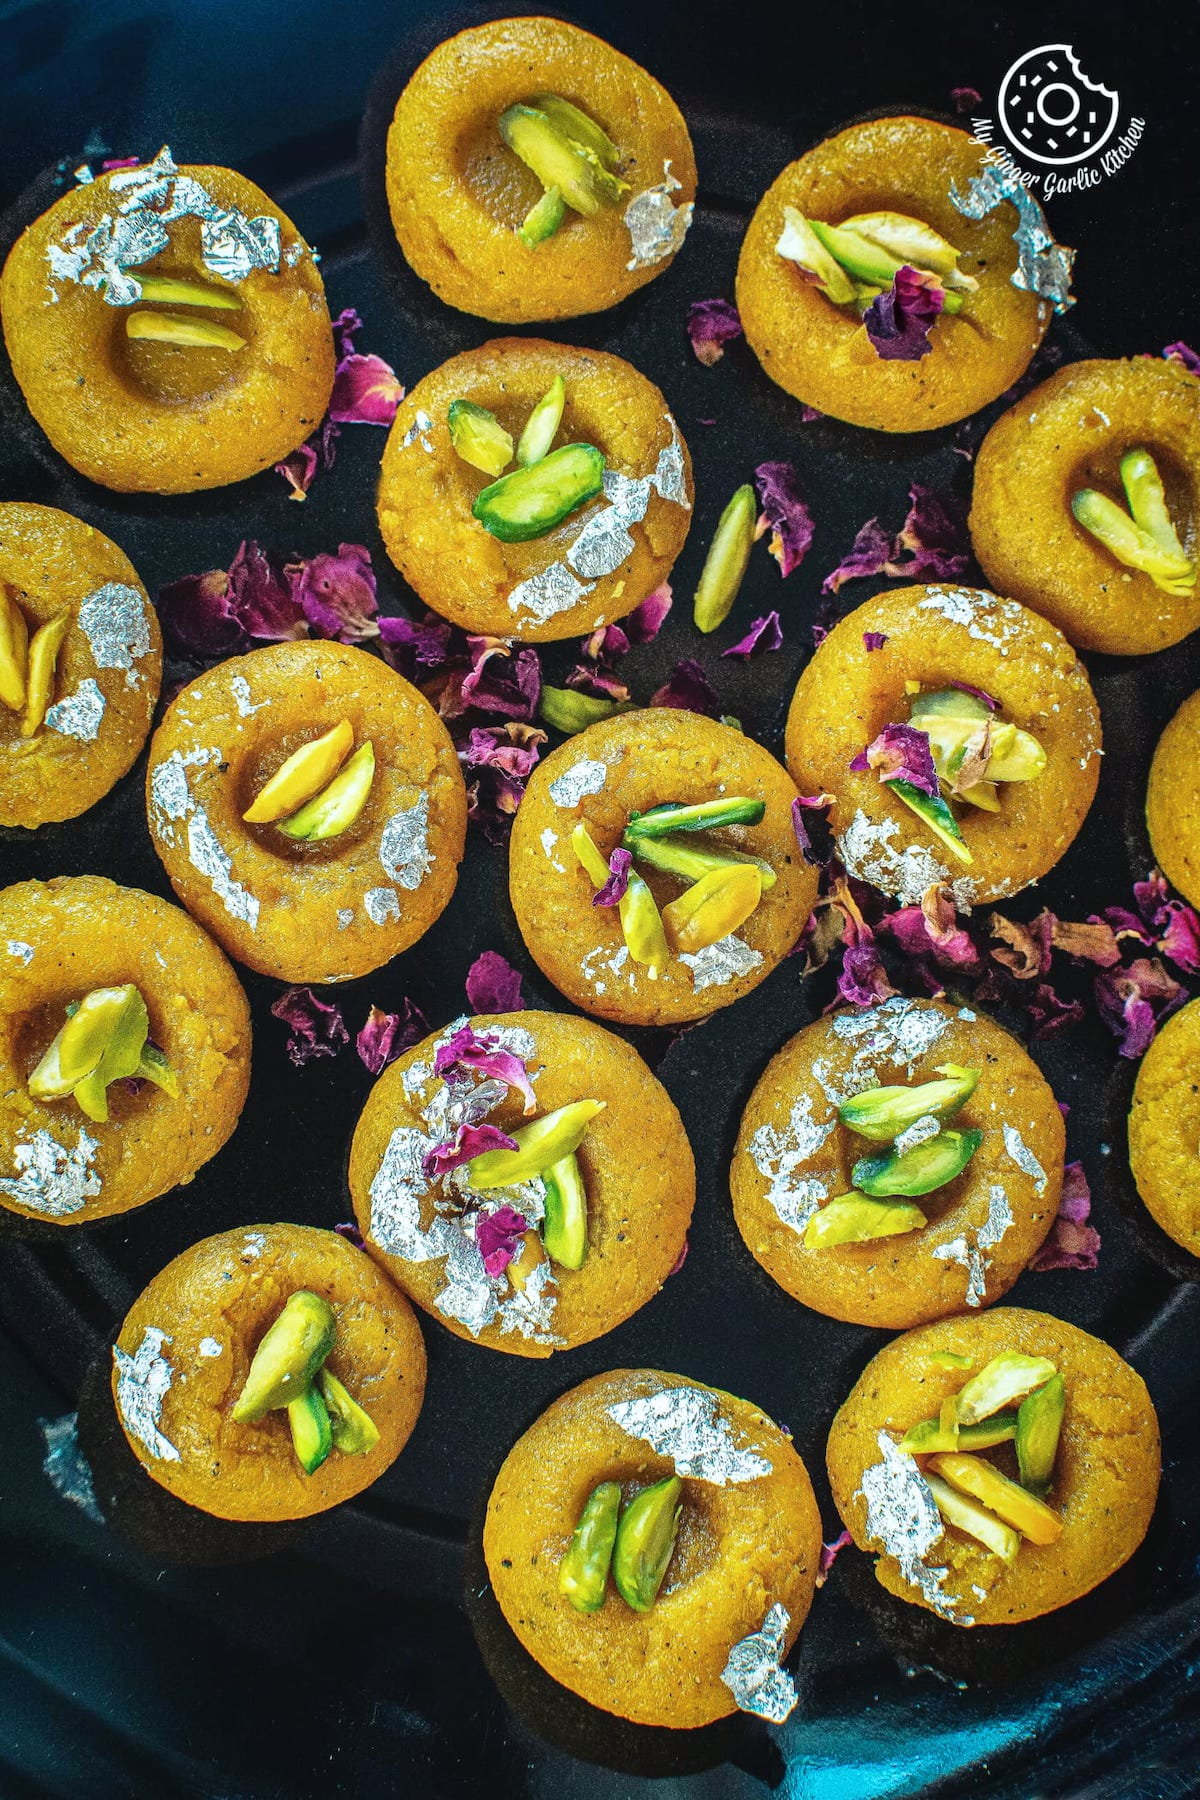 mango peda served in a steel tray